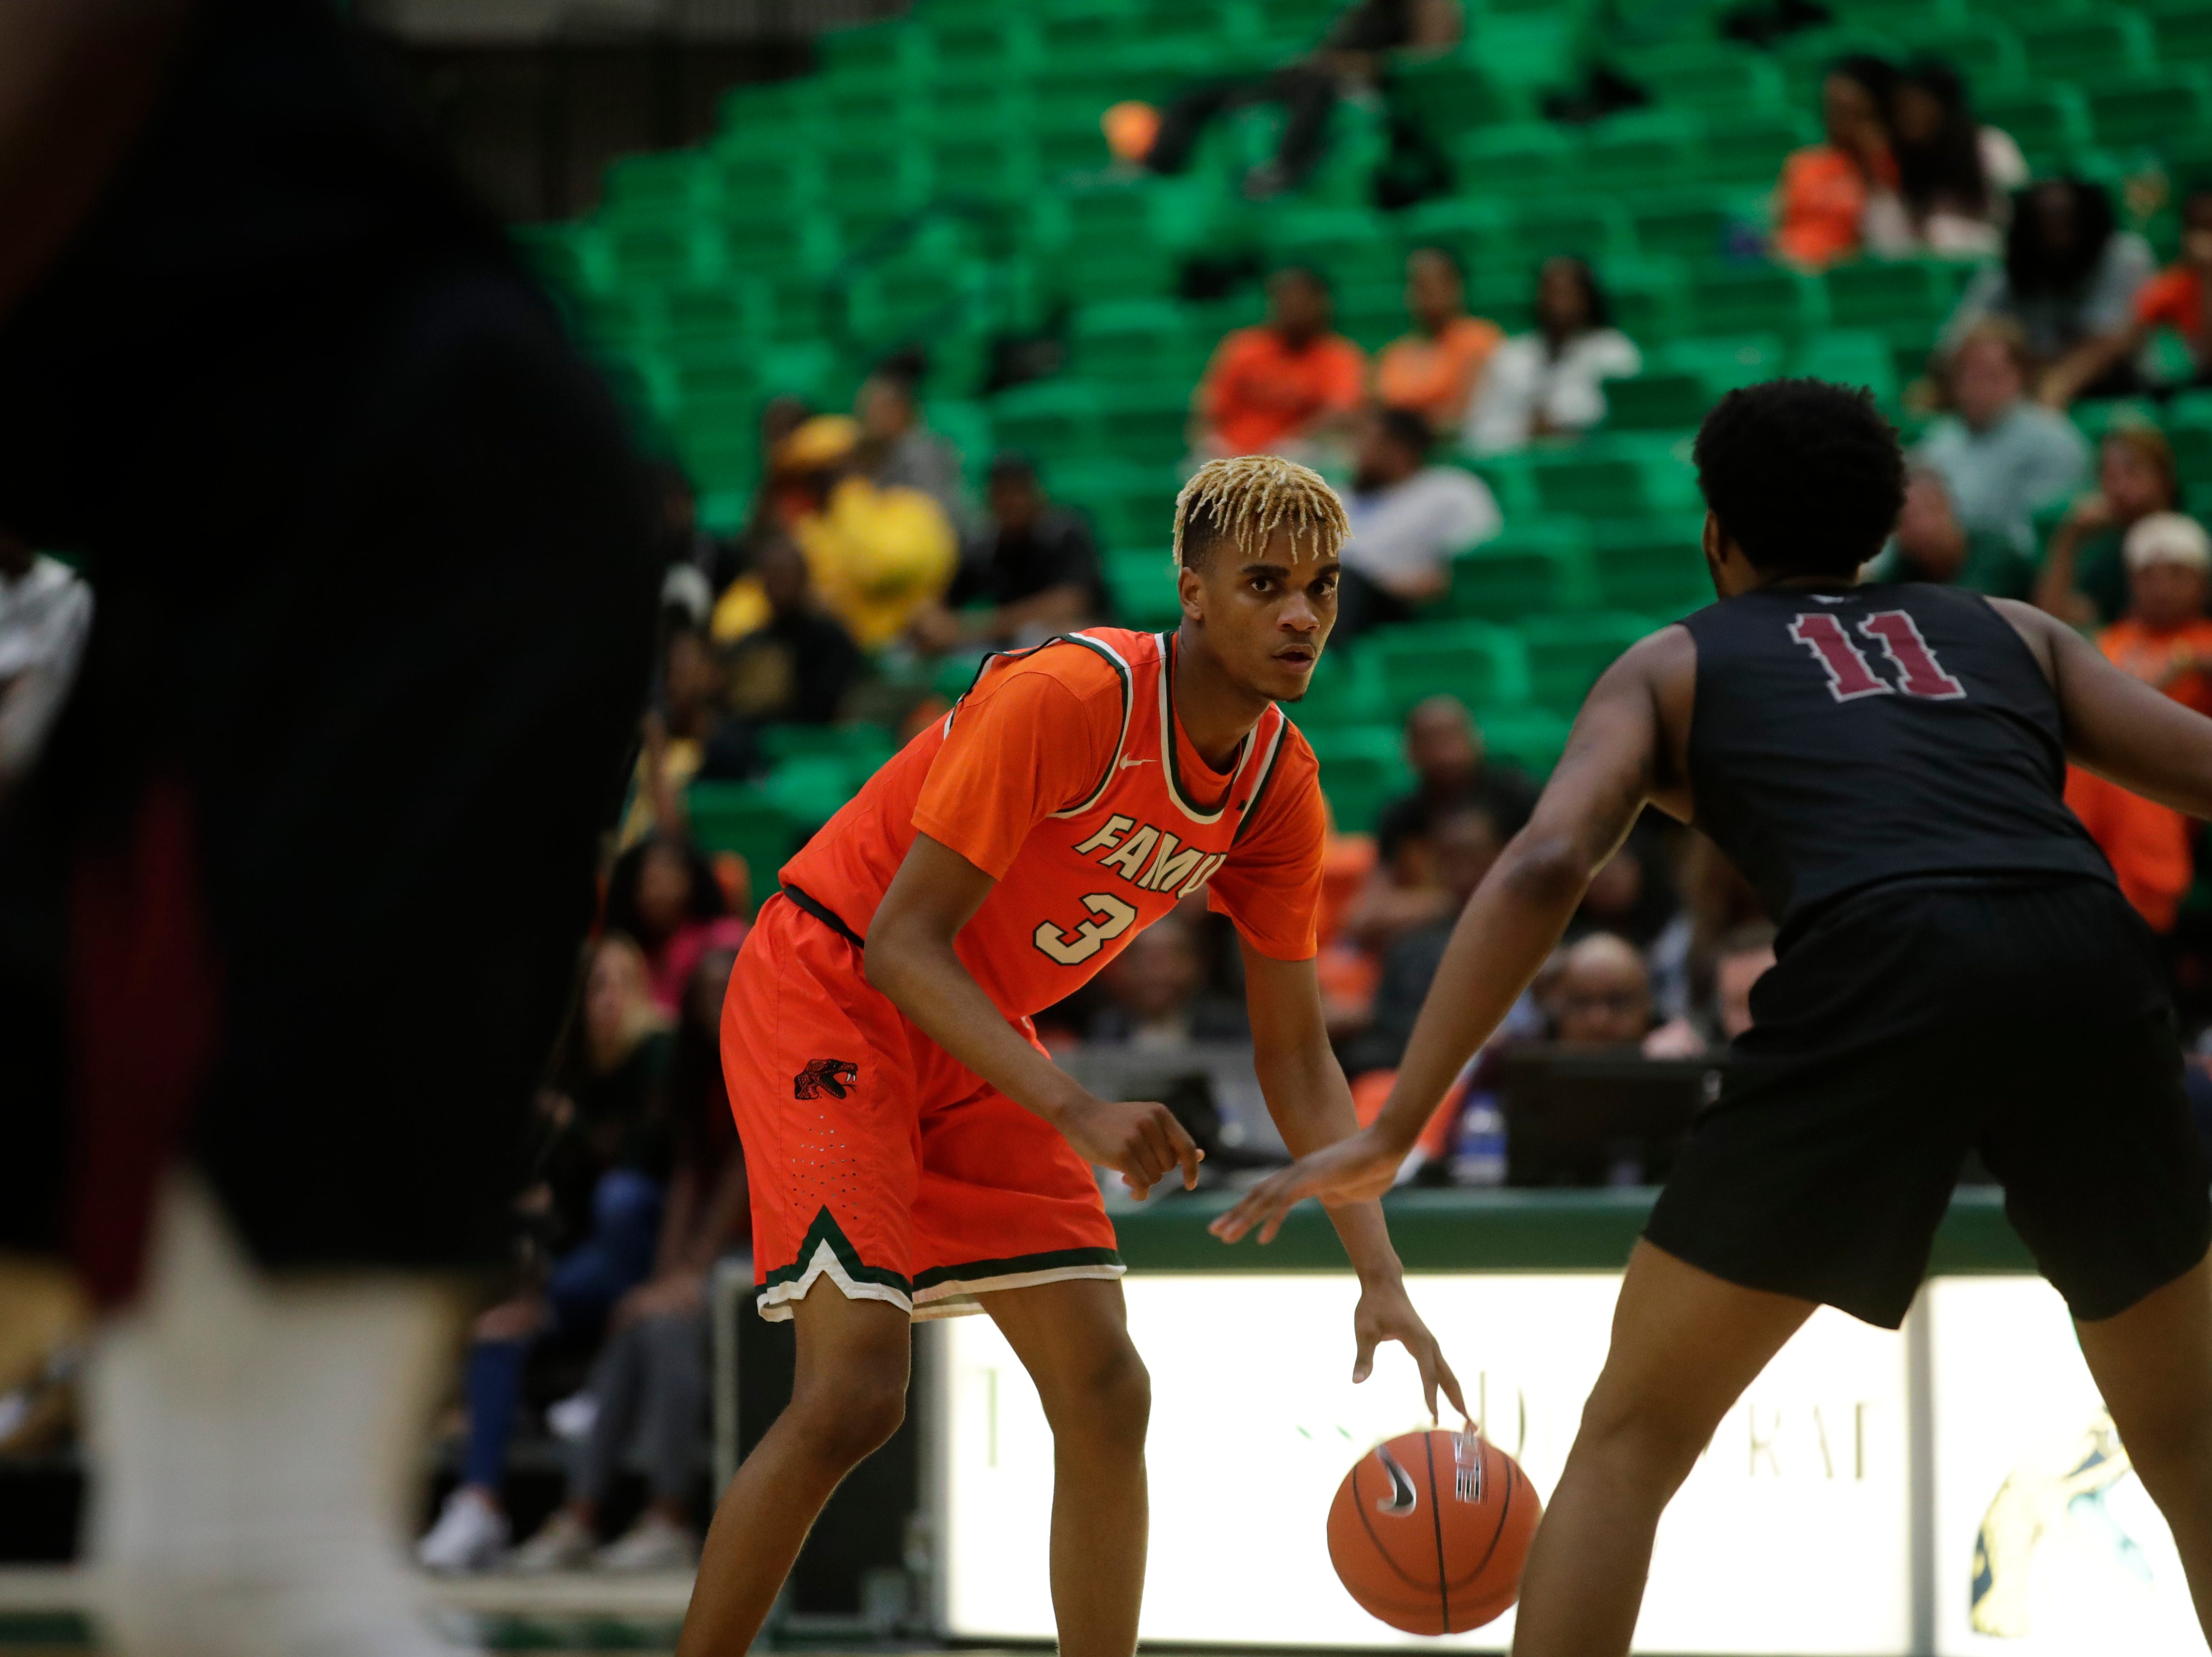 FAMU's M.J. Randolph sizes up N.C. Central's Randy Miller at the Alfred Lawson Jr. Multipurpose Center Monday, Feb. 4, 2019.